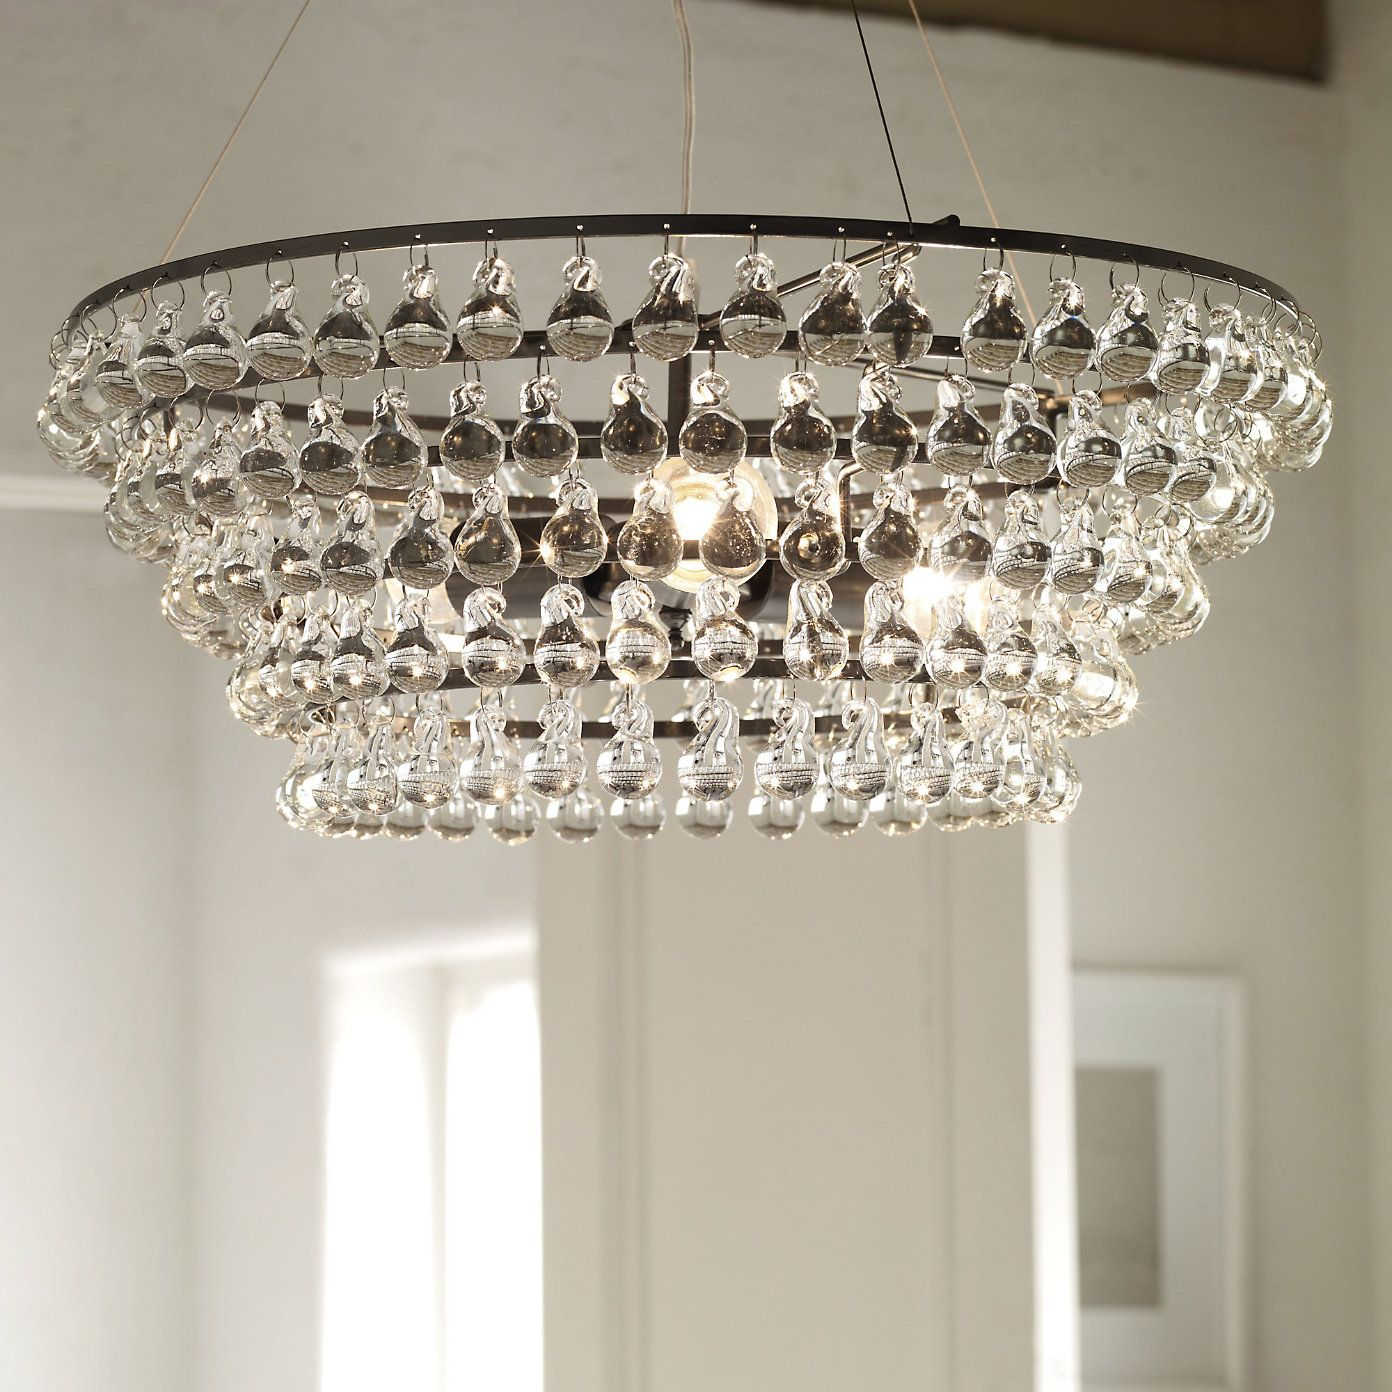 Buy Home Accessories Part - 25: Buy Home Accessories U003e Lighting U003e Solid Glass Orb Ceiling Light From The  White Company